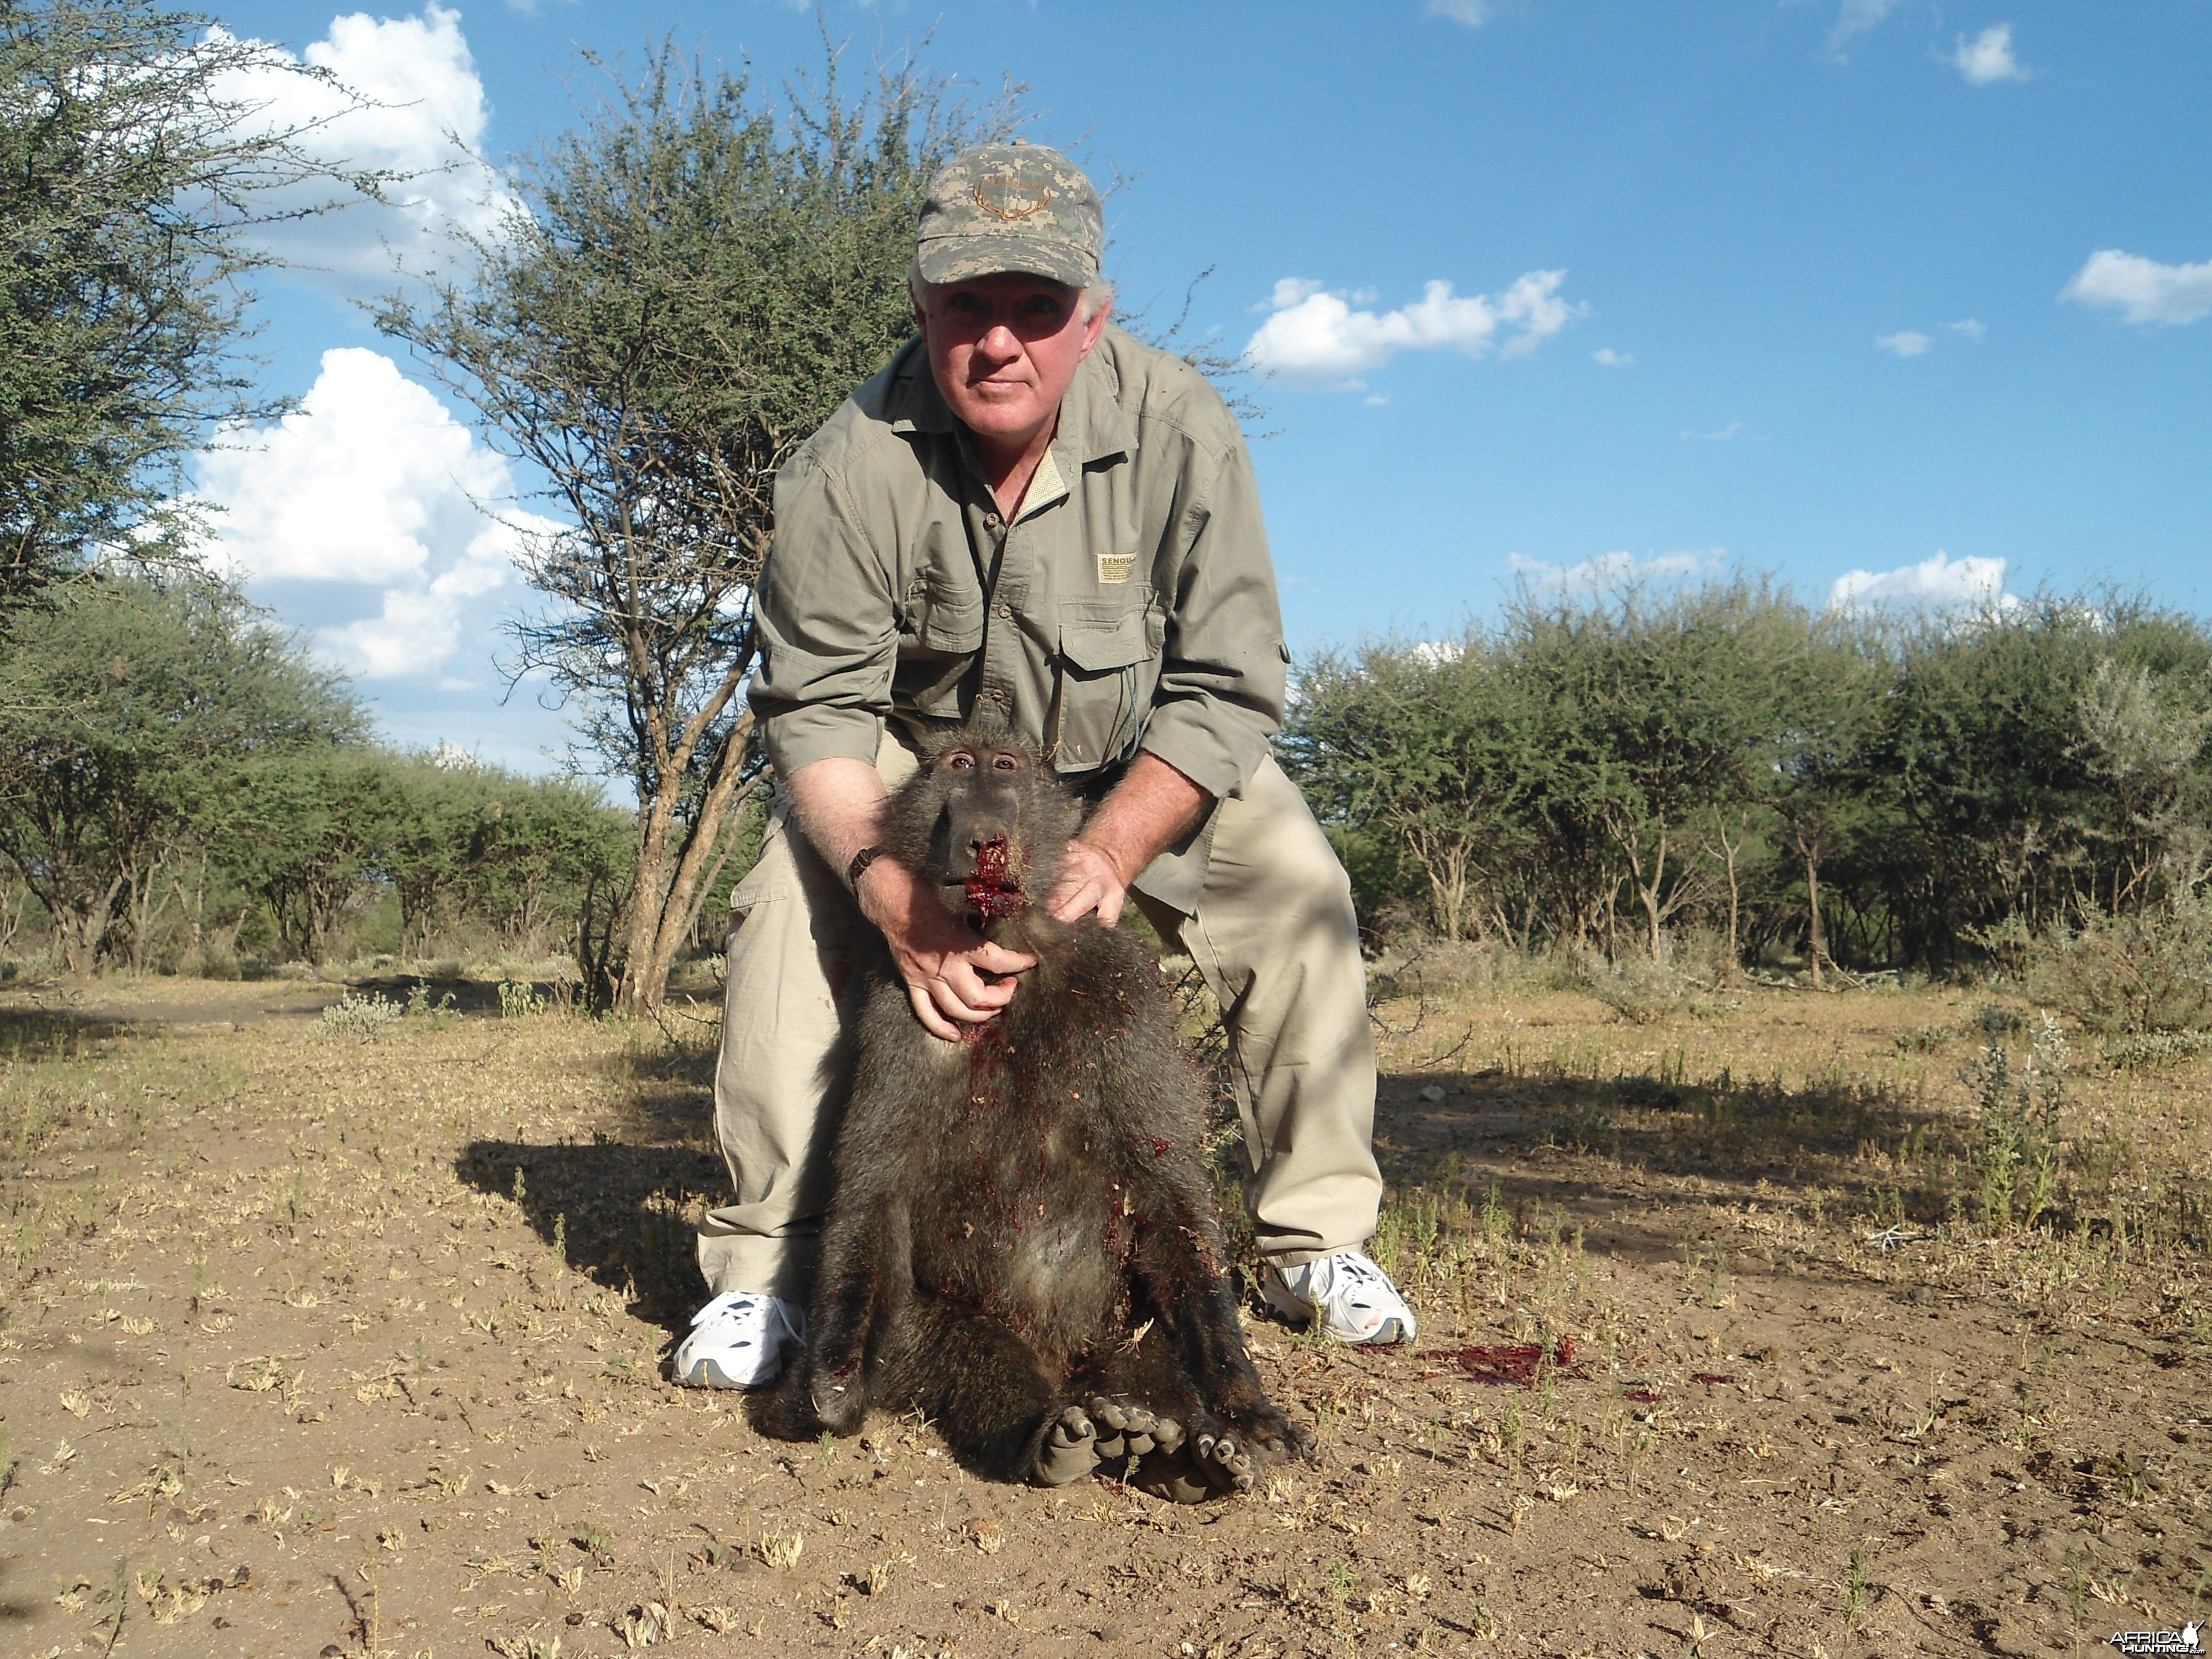 Chacma Baboon hunted with Ozondjahe Hunting Safaris in Namibia